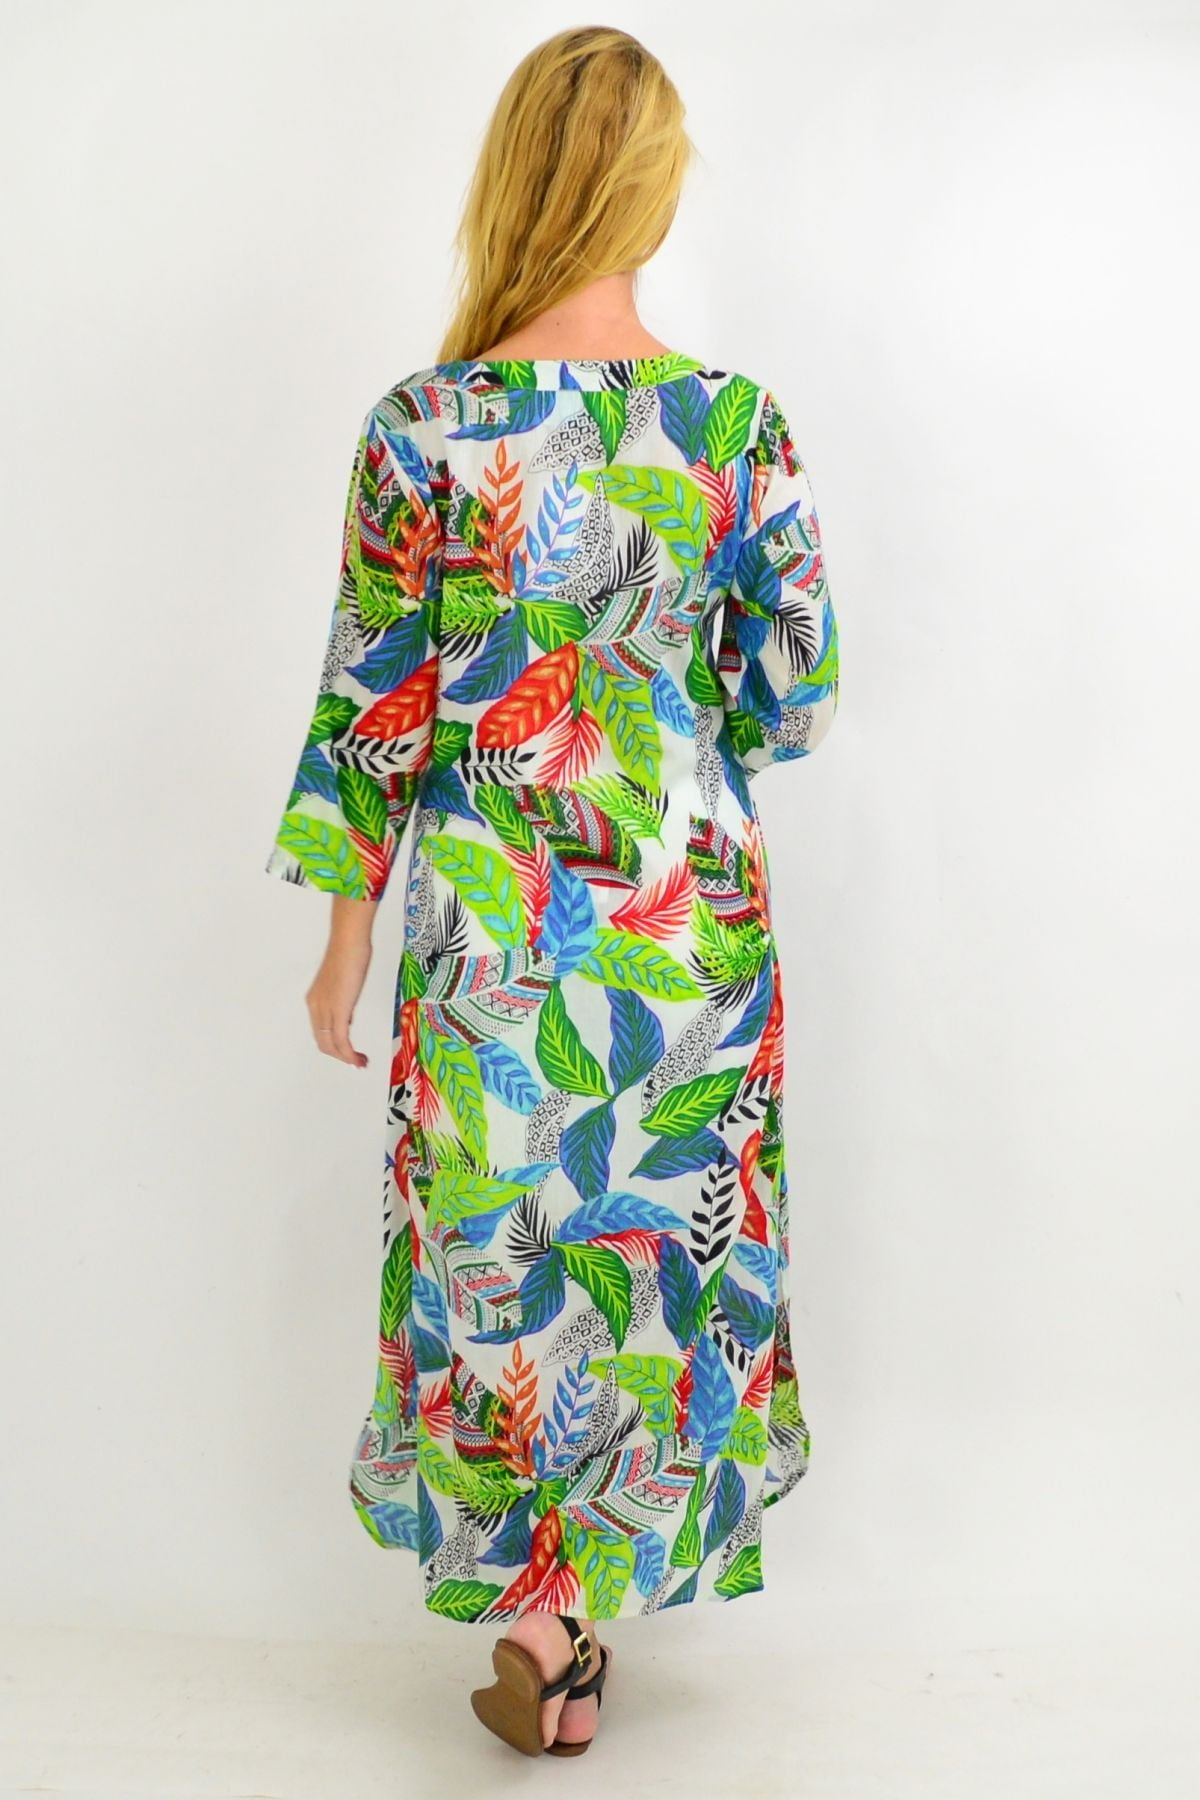 Green Leaf One Summer Maxi Tunic Dress | I Love Tunics | Tunic Tops | Tunic | Tunic Dresses  | womens clothing online